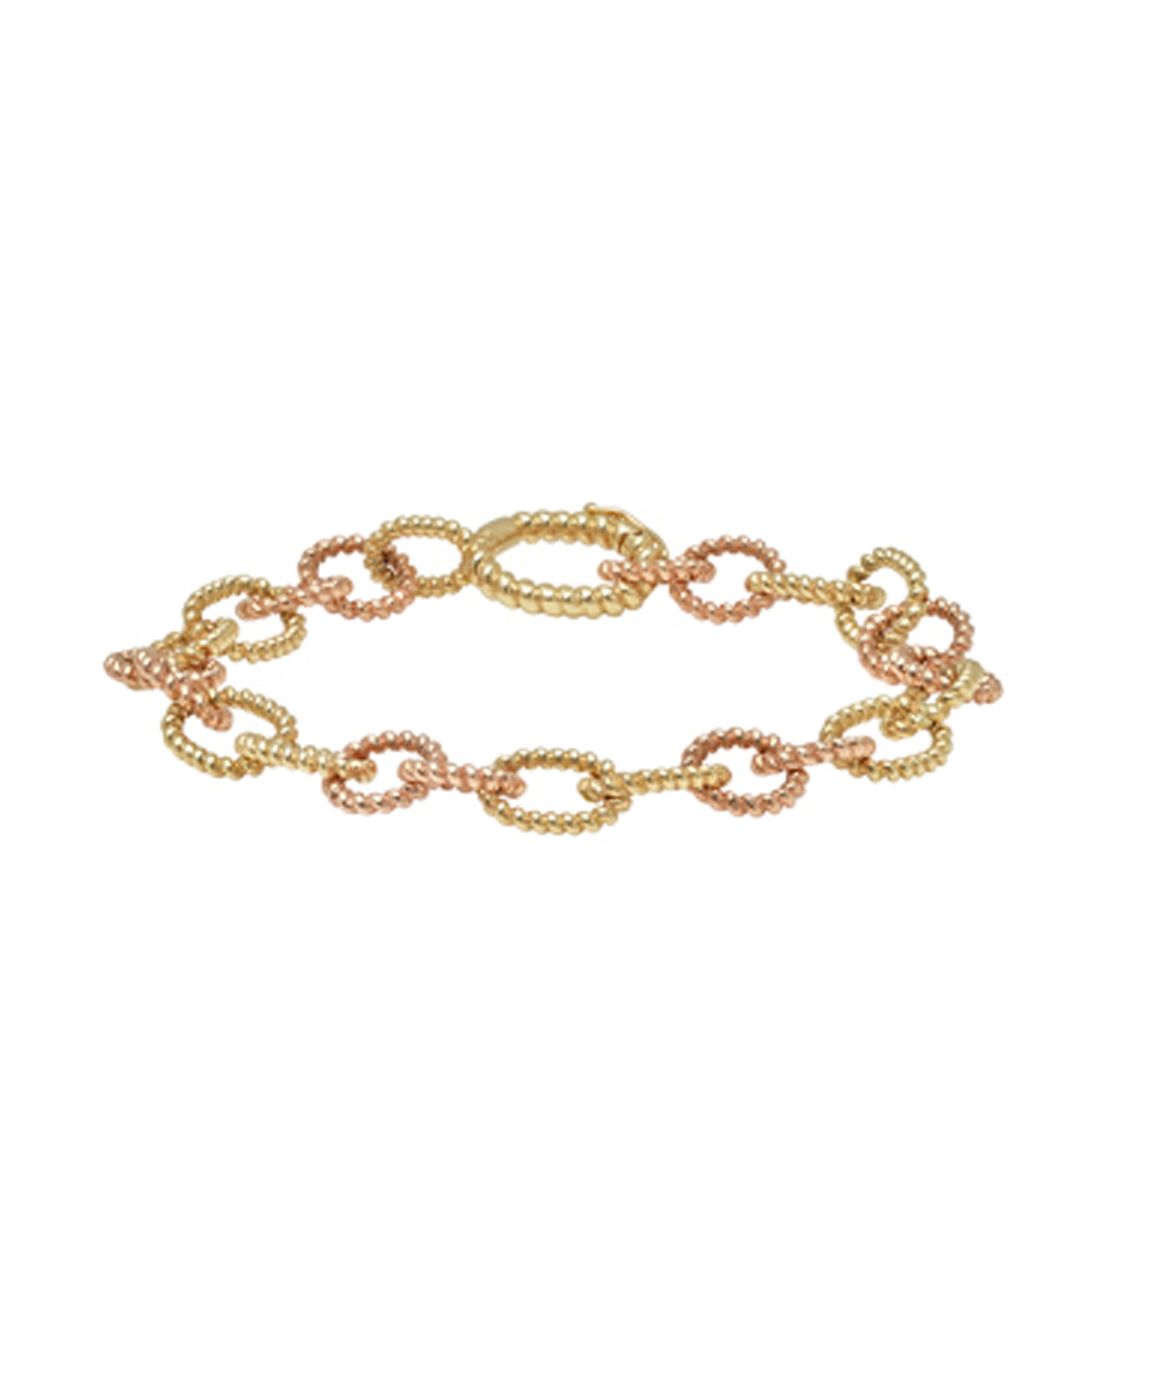 Two Toned Twisted Oval Link Bracelet - Lesley Ann Jewels